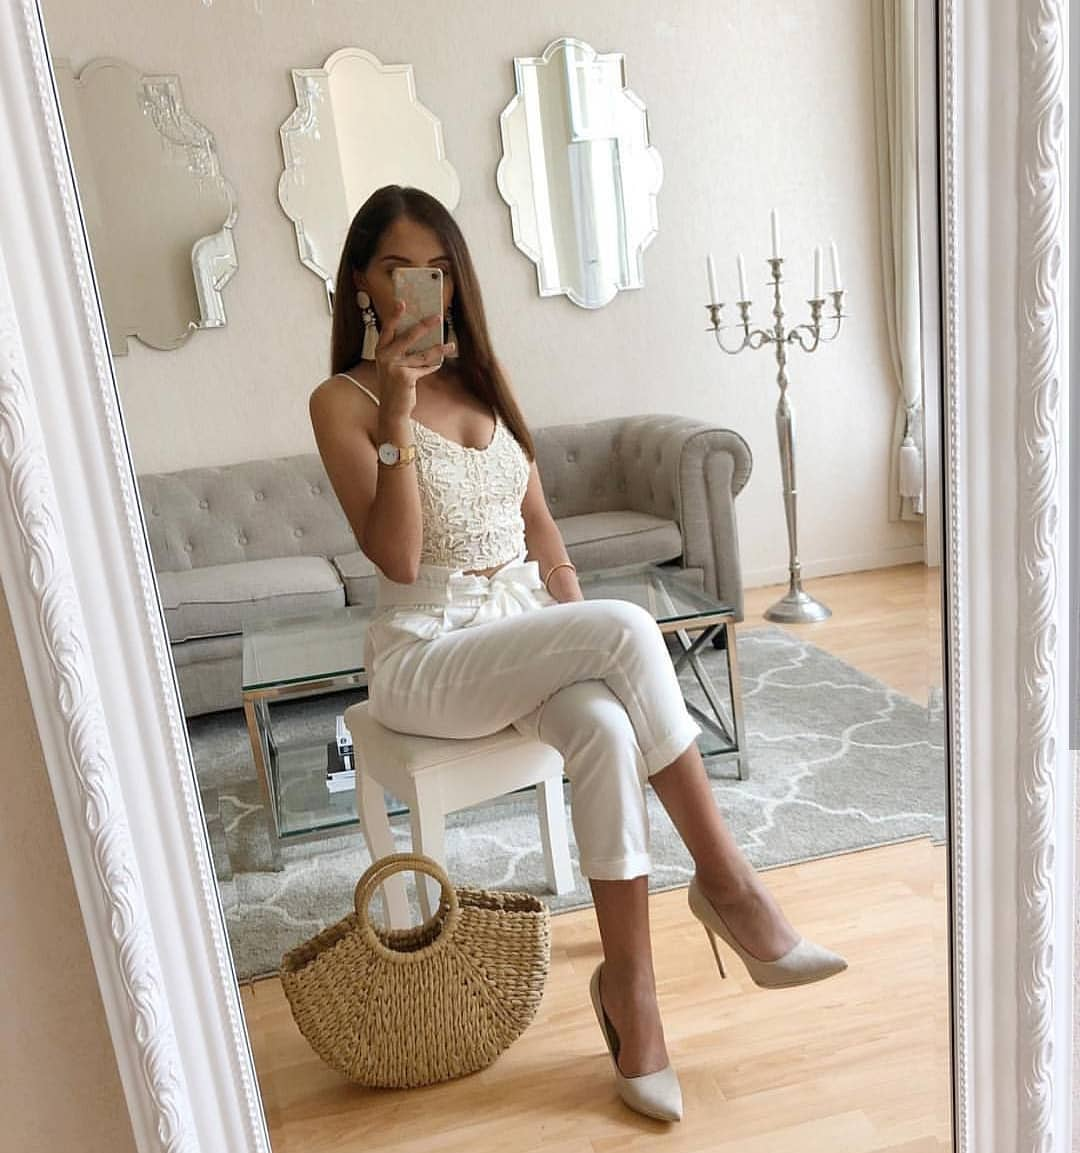 Summer Lace Crop Top, Slim Pants And White Pumps In All White 2019